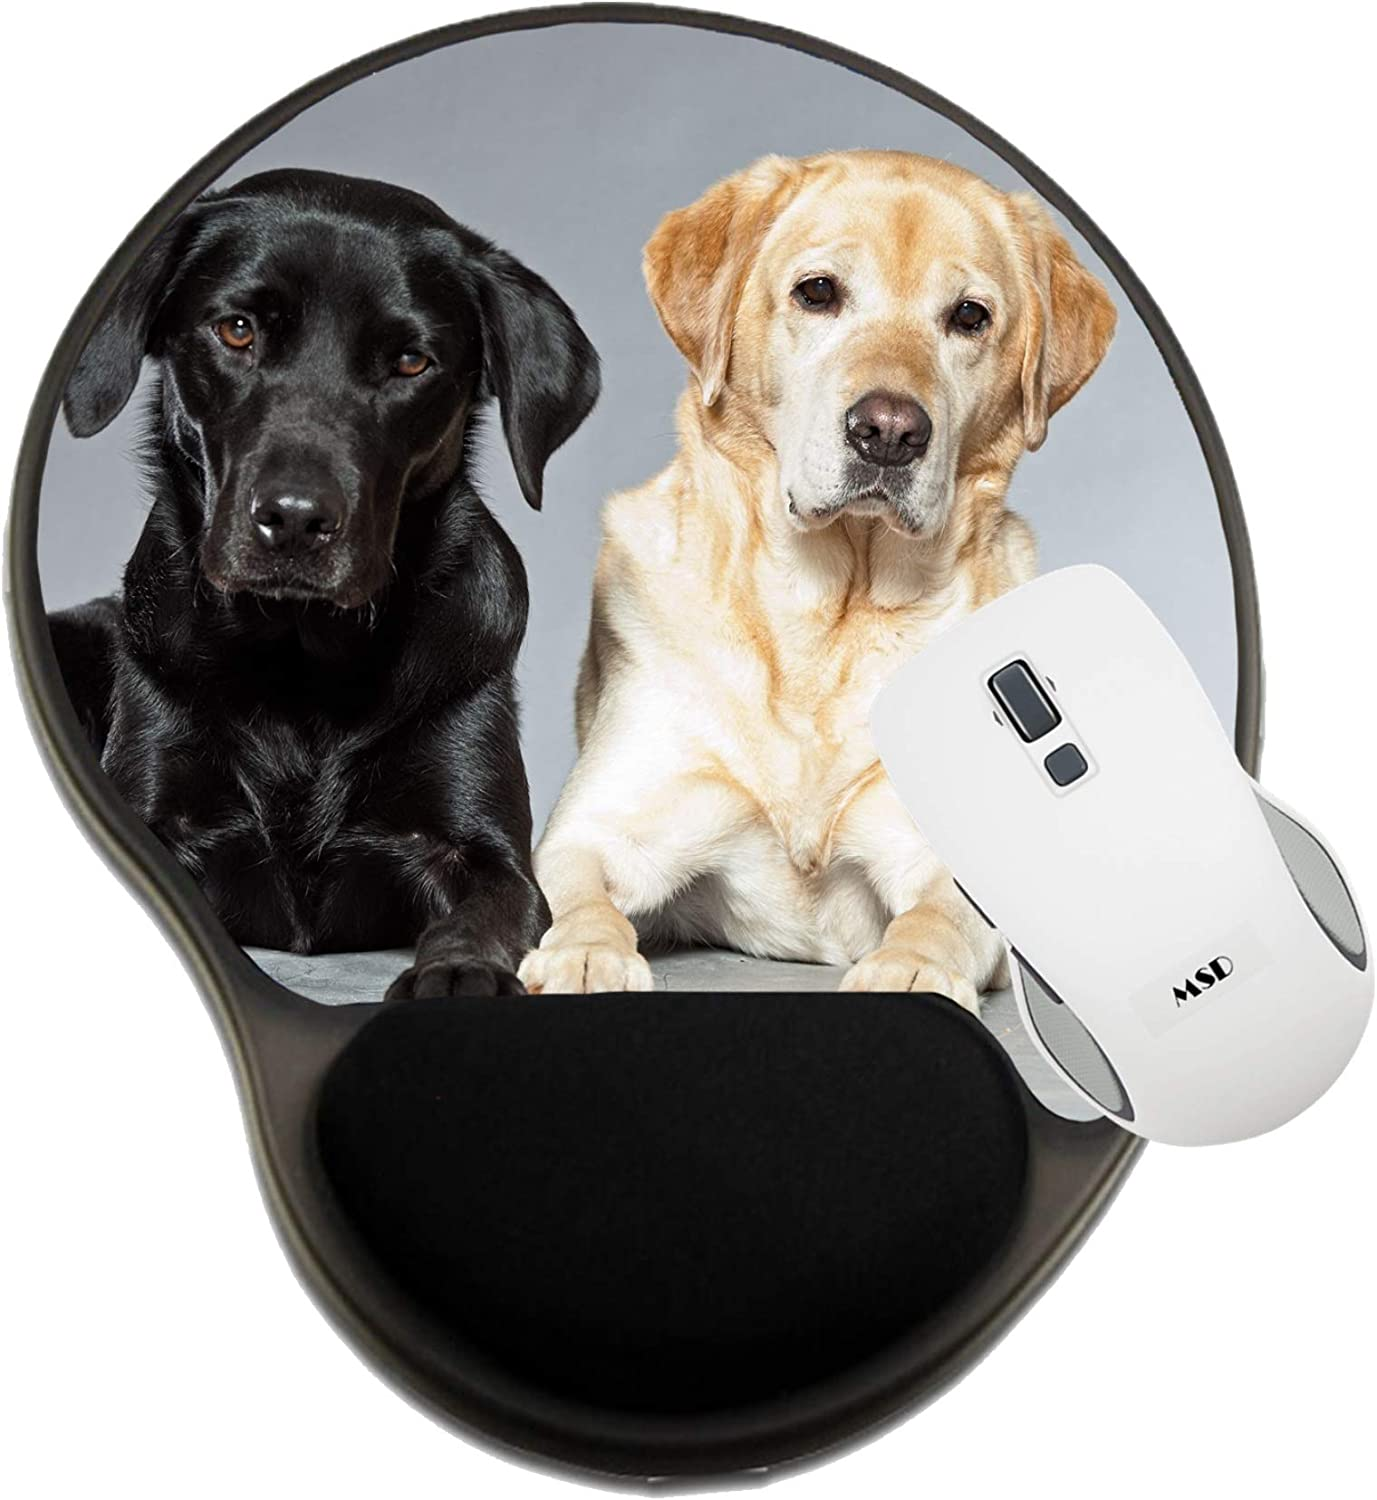 Mat with Wrist Support MSD Mousepad Wrist Rest Protected Mouse Pads Image ID 17777968 Blonde and Black Labrador retriev